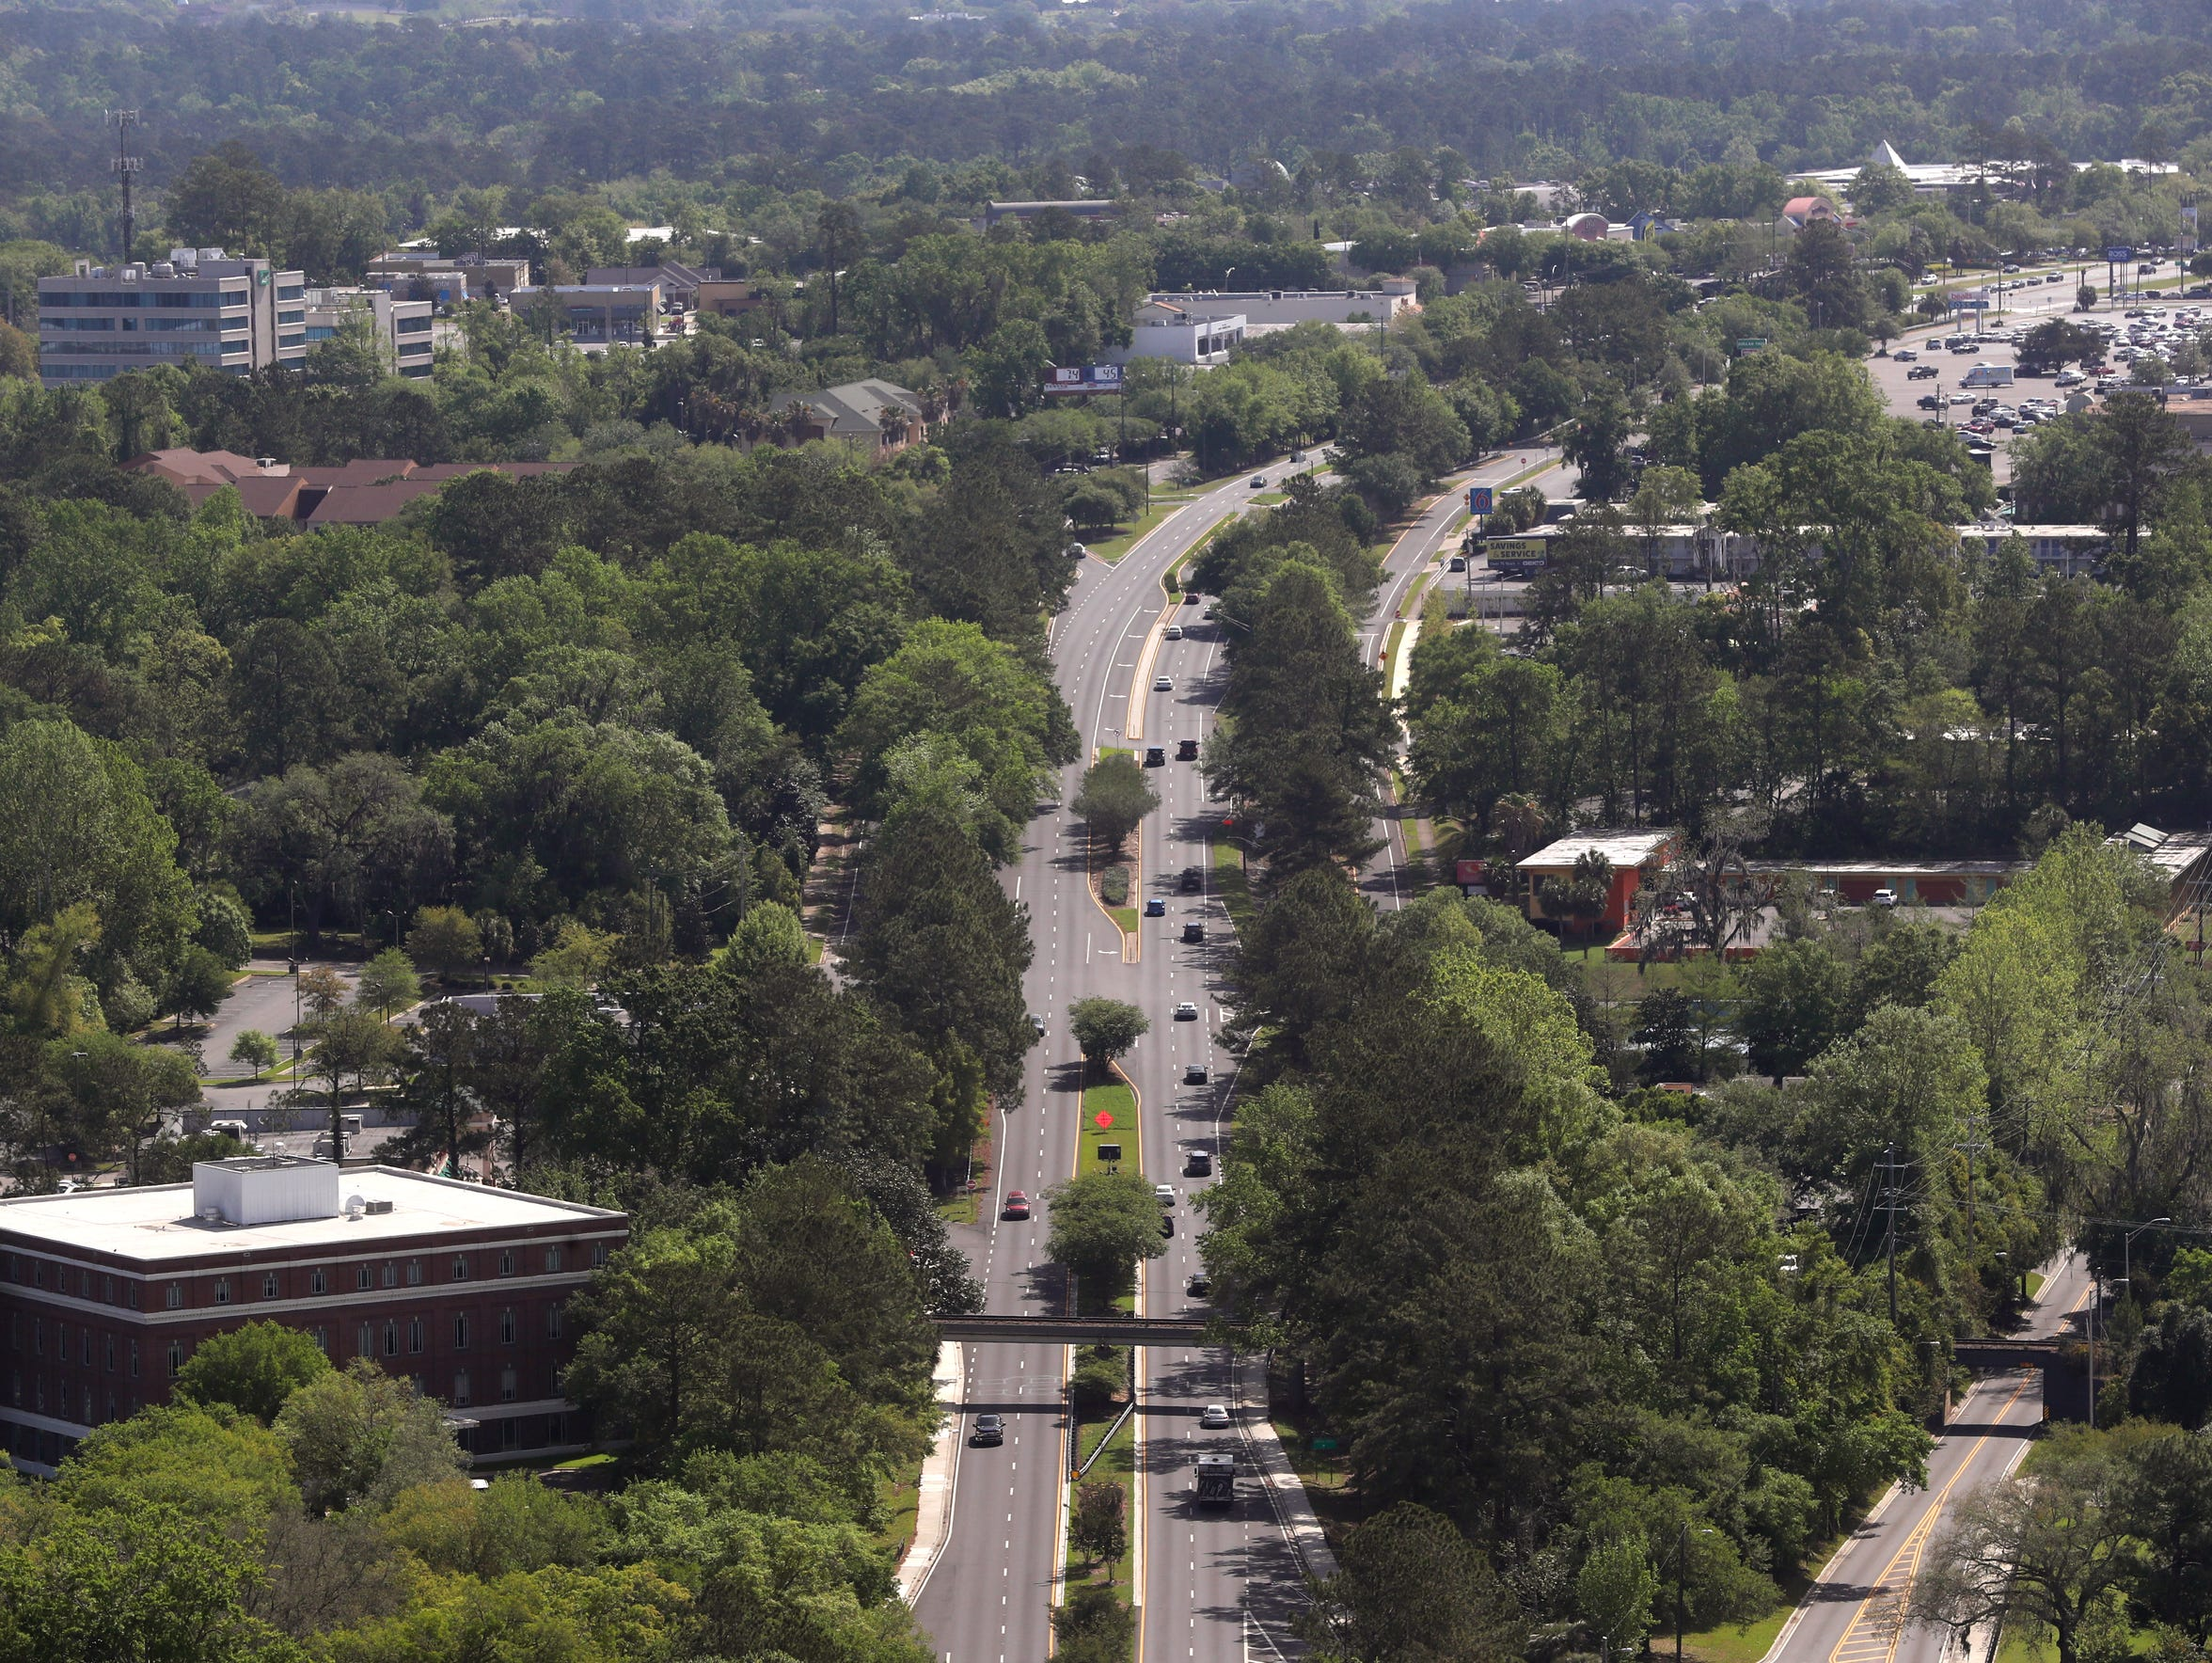 The sylvan view looking East down Apalachee Parkway